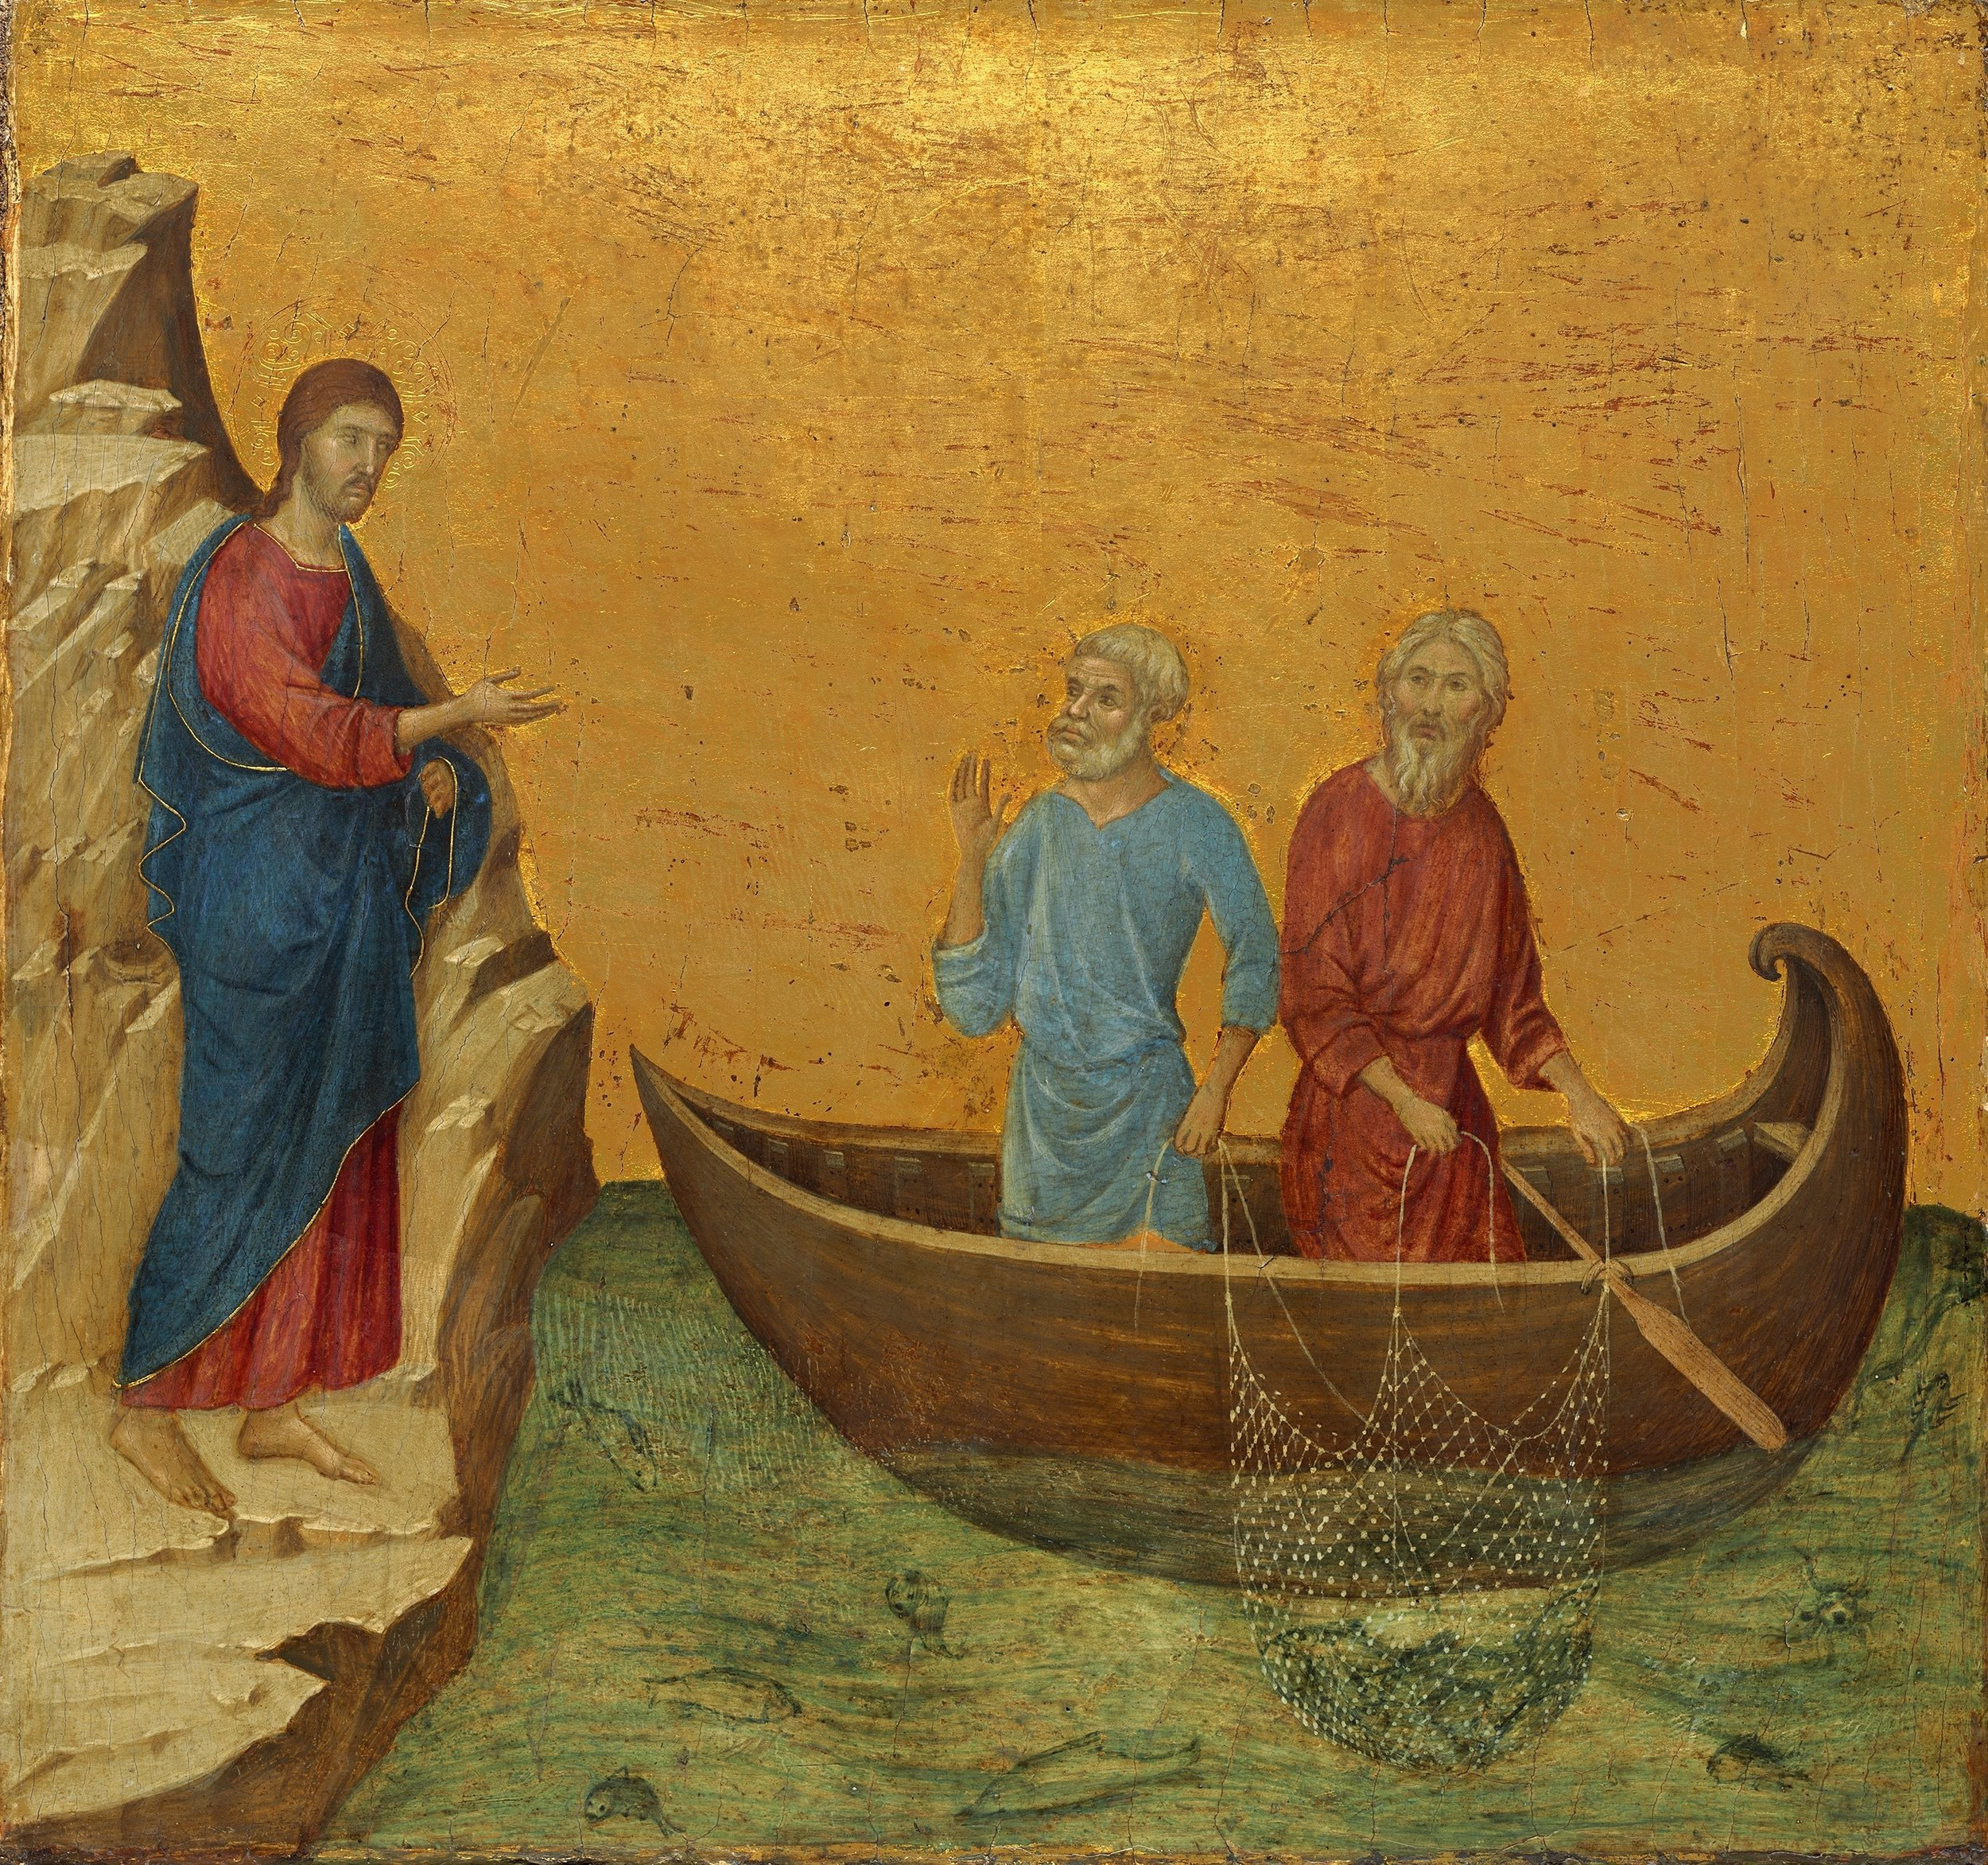 The Calling of the Apostles Peter and Andrew by Duccio di Buoninsegna (1308)